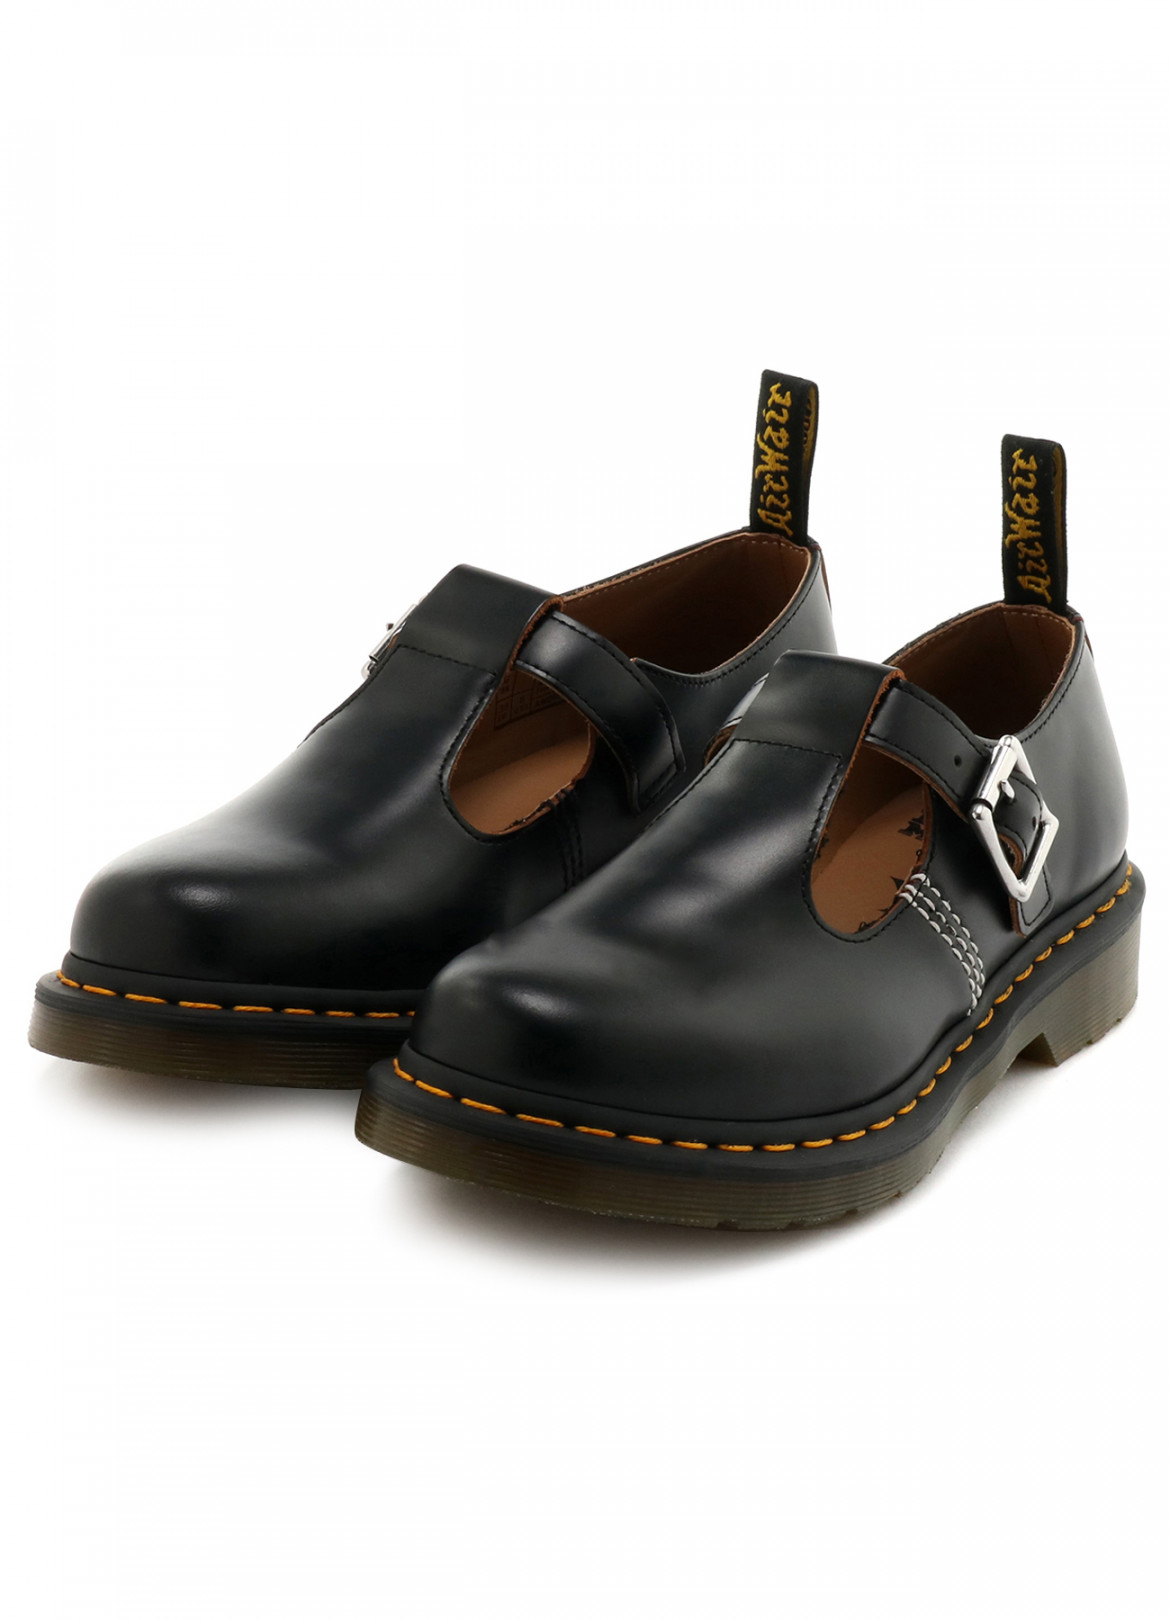 「Y's Dr. Martens POLLEY T-BAR STRAP SHOES」(ブラック/3万8,000円)